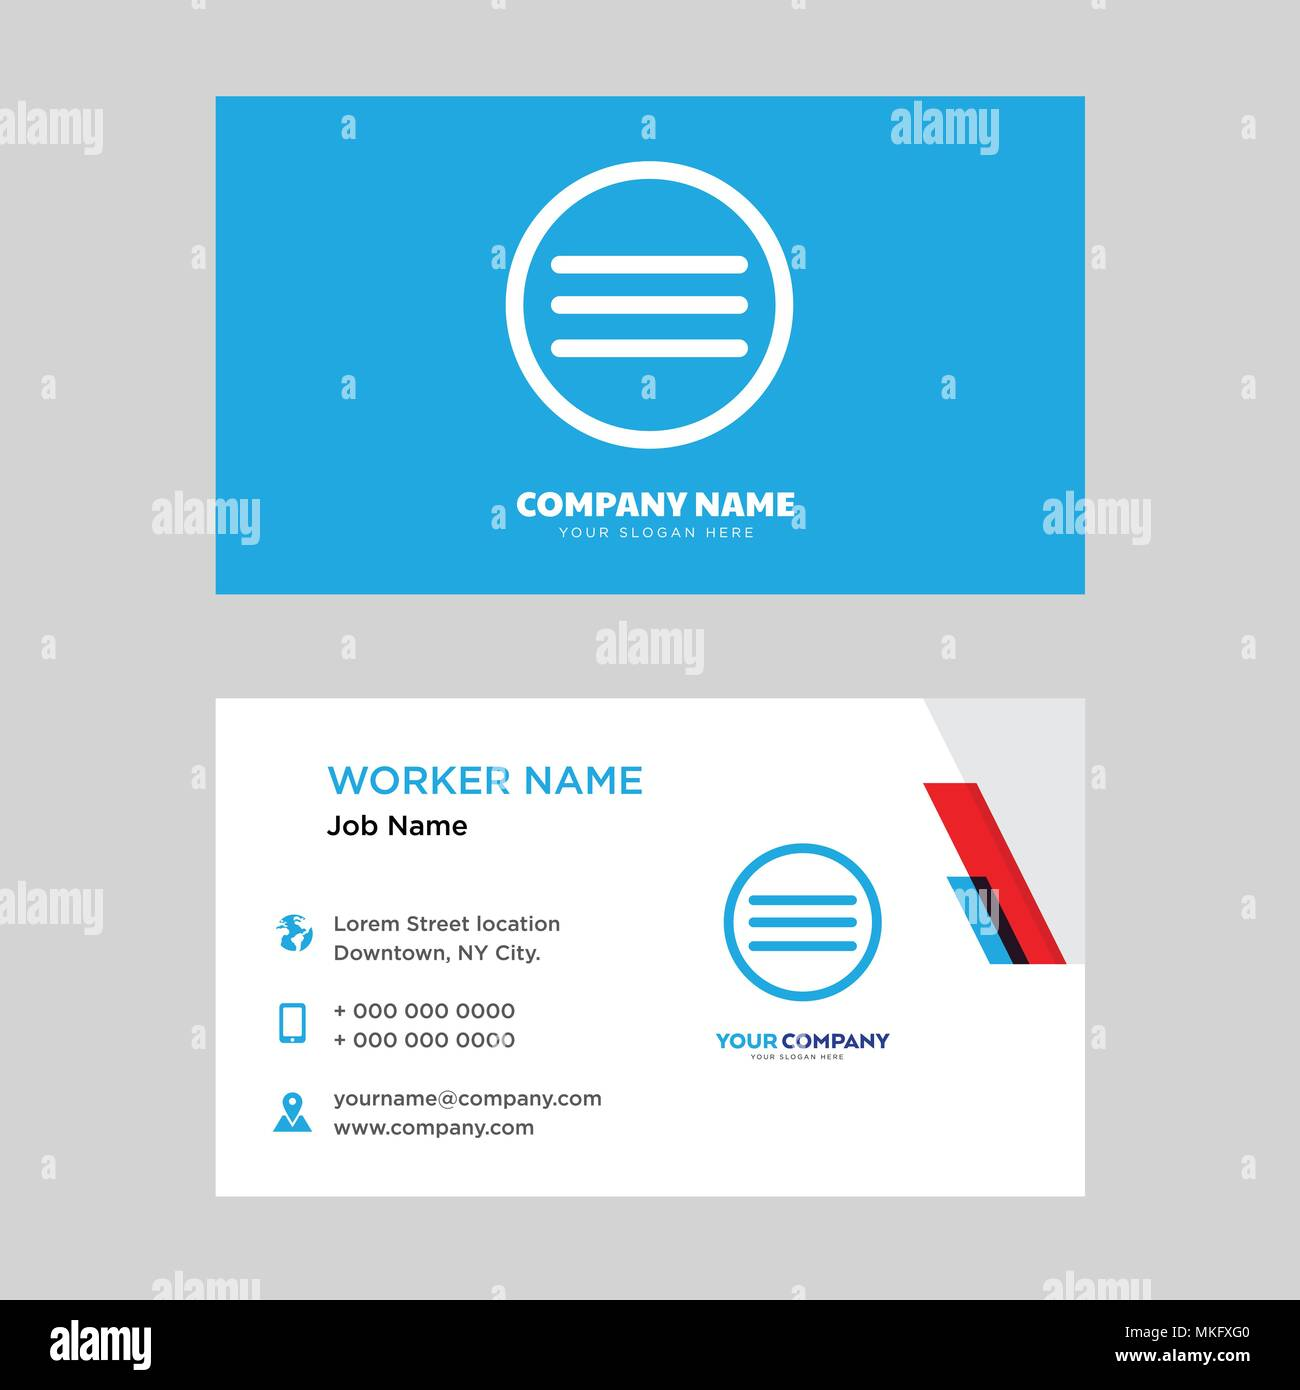 Menu business card design template visiting for your company menu business card design template visiting for your company modern horizontal identity card vector flashek Image collections